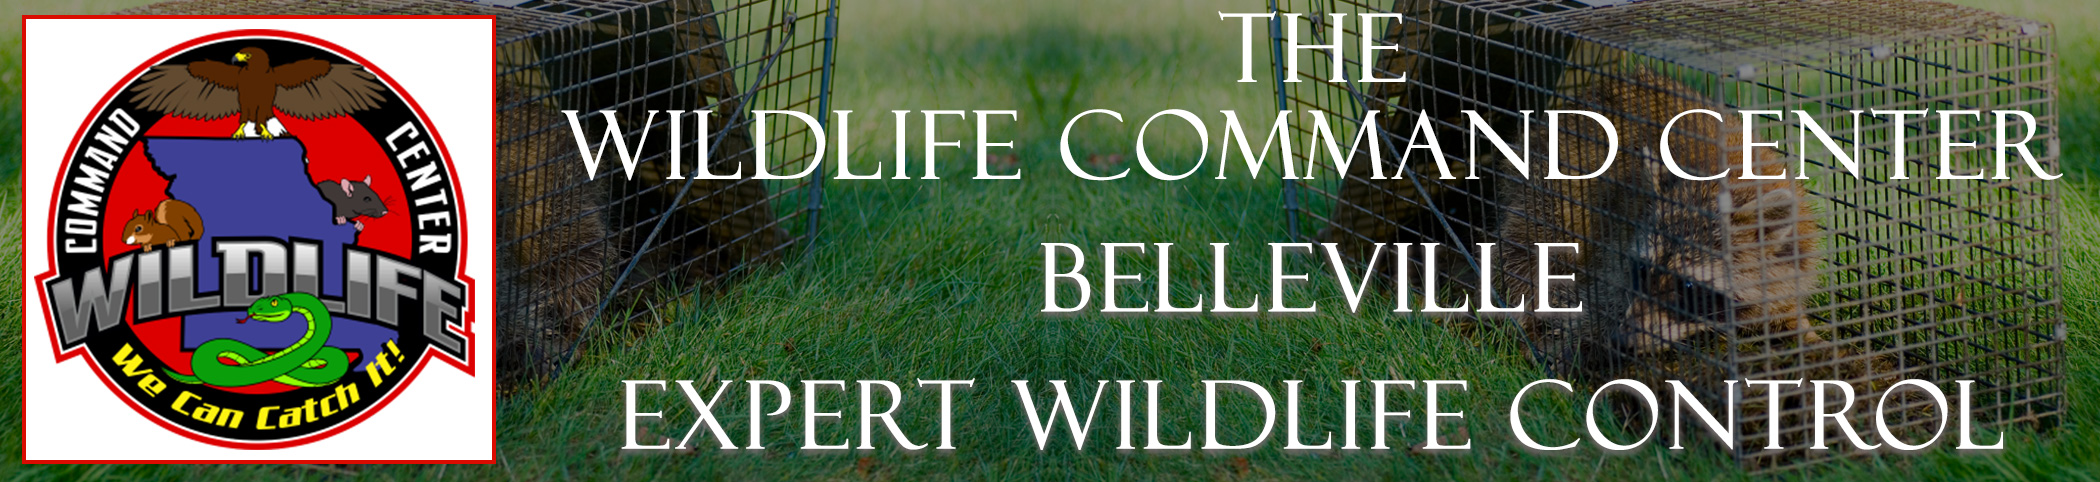 The Wildlife Command Center Belleville Missouri Image